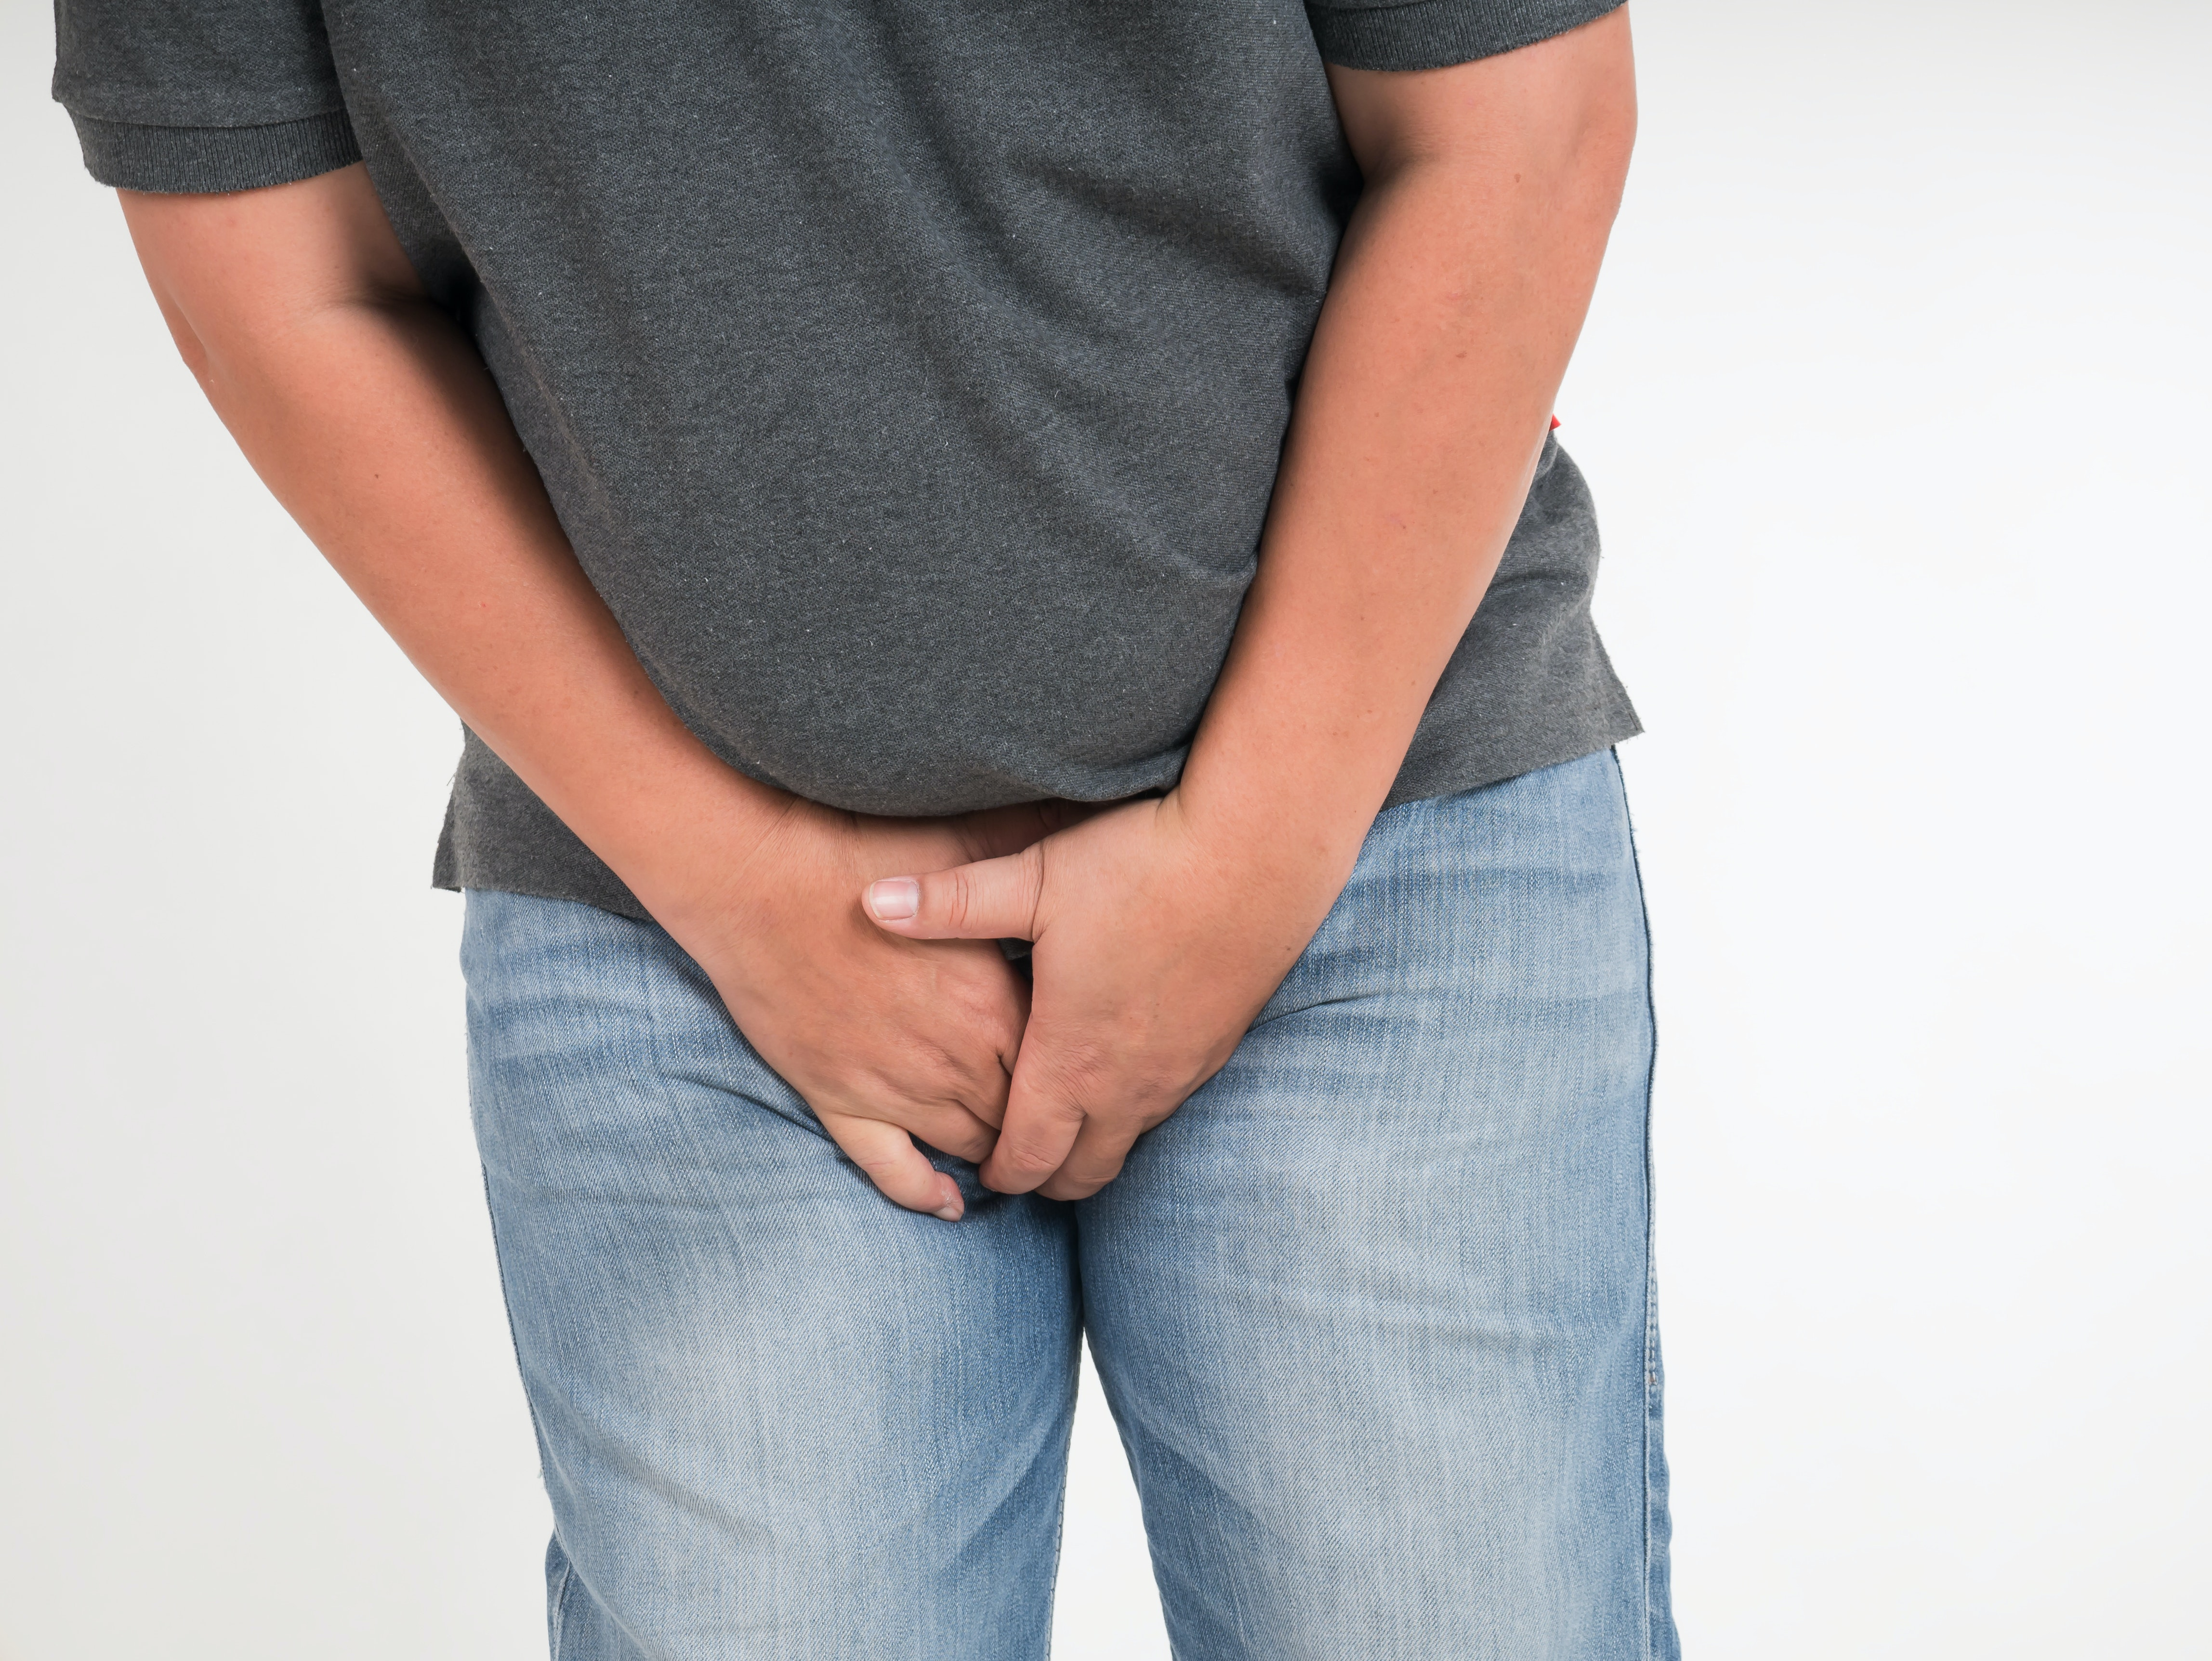 Hurt testicles from lack of sex